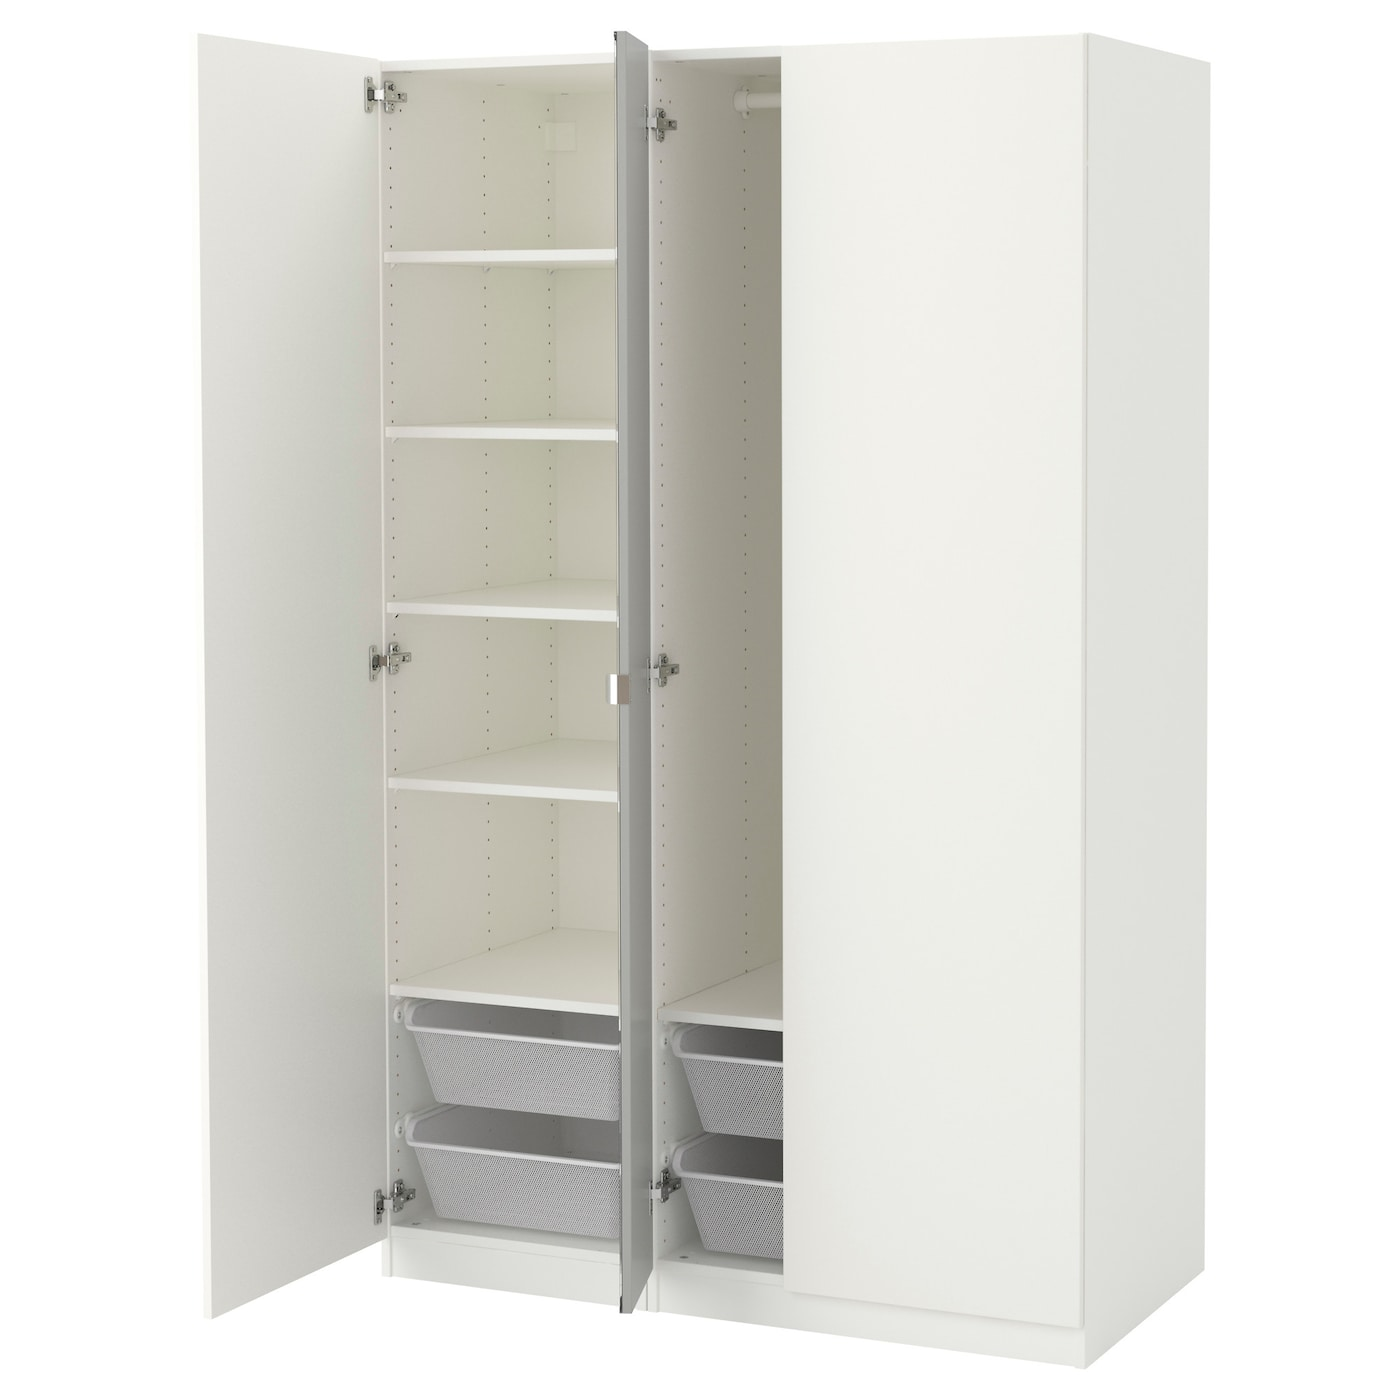 pax armoire penderie blanc ballstad vikedal 125x60x201 cm. Black Bedroom Furniture Sets. Home Design Ideas